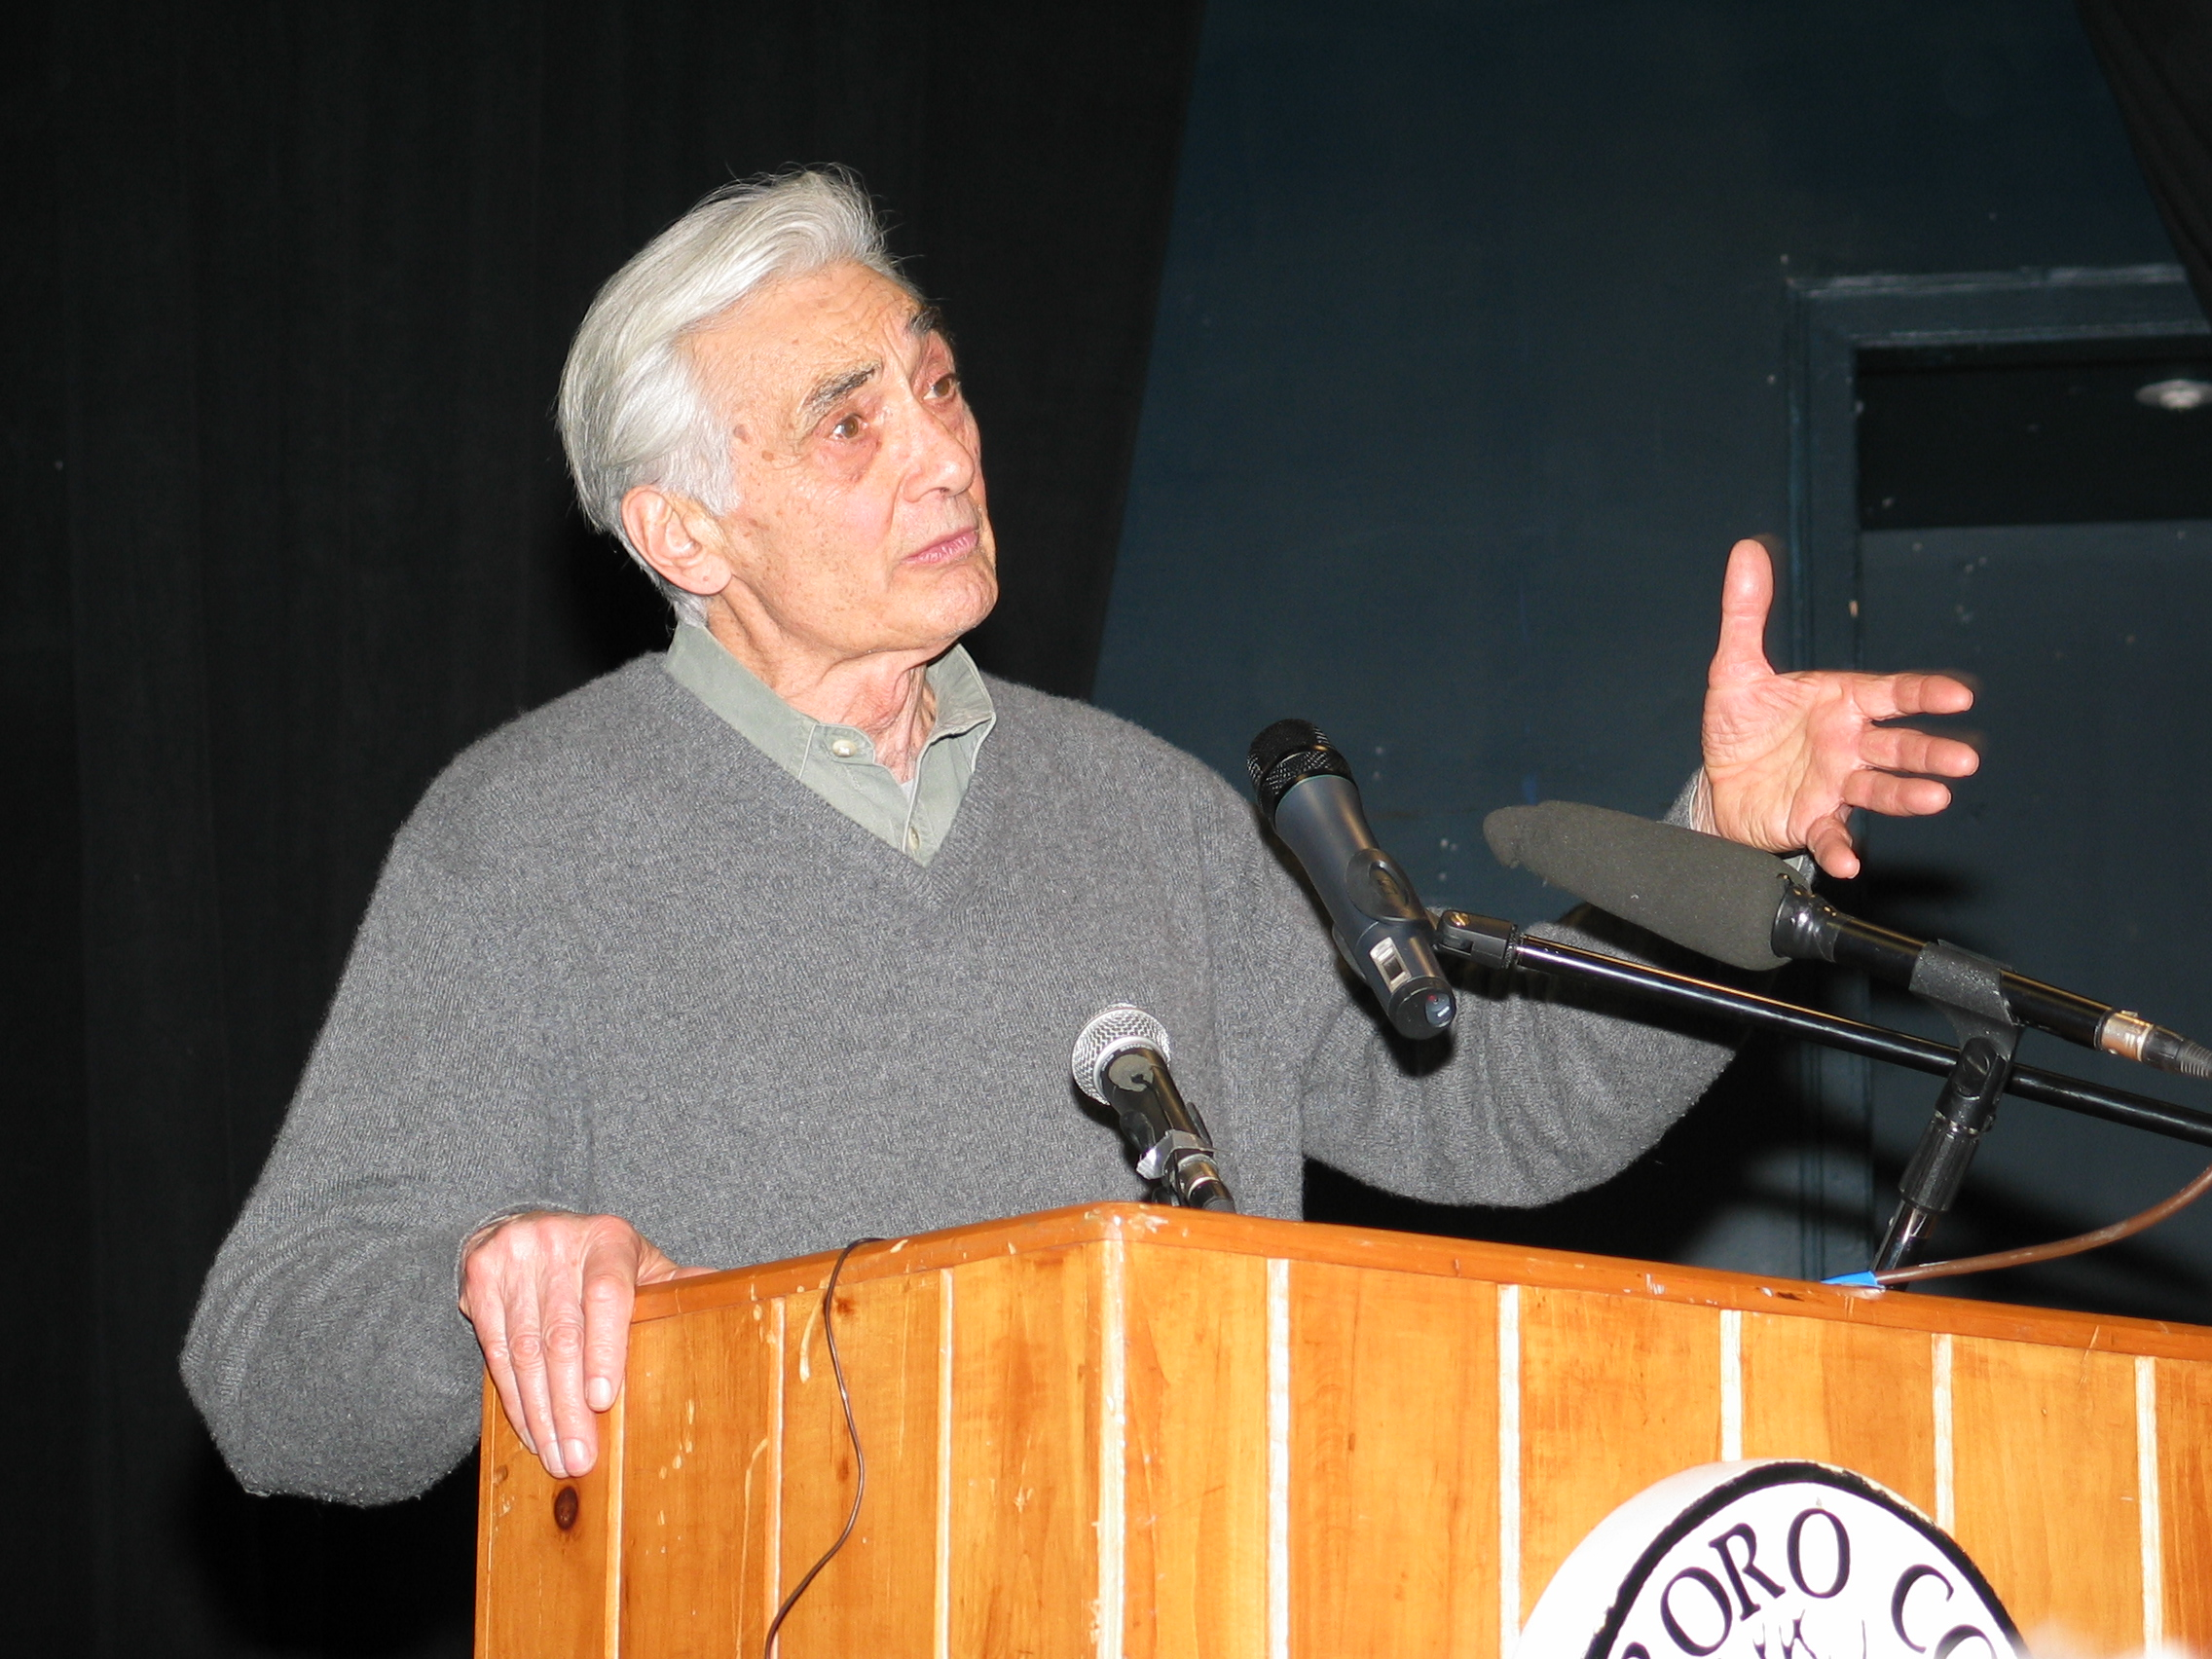 howard zinn thesis The united states government's support of slavery was based on an overpowering practicality in 1790, a thousand tons of cotton were being produced every year in the south by 1860, it was a million tons in the same period, 500,000 slaves grew to 4 million a system harried by slave rebellions and conspiracies (gabriel.